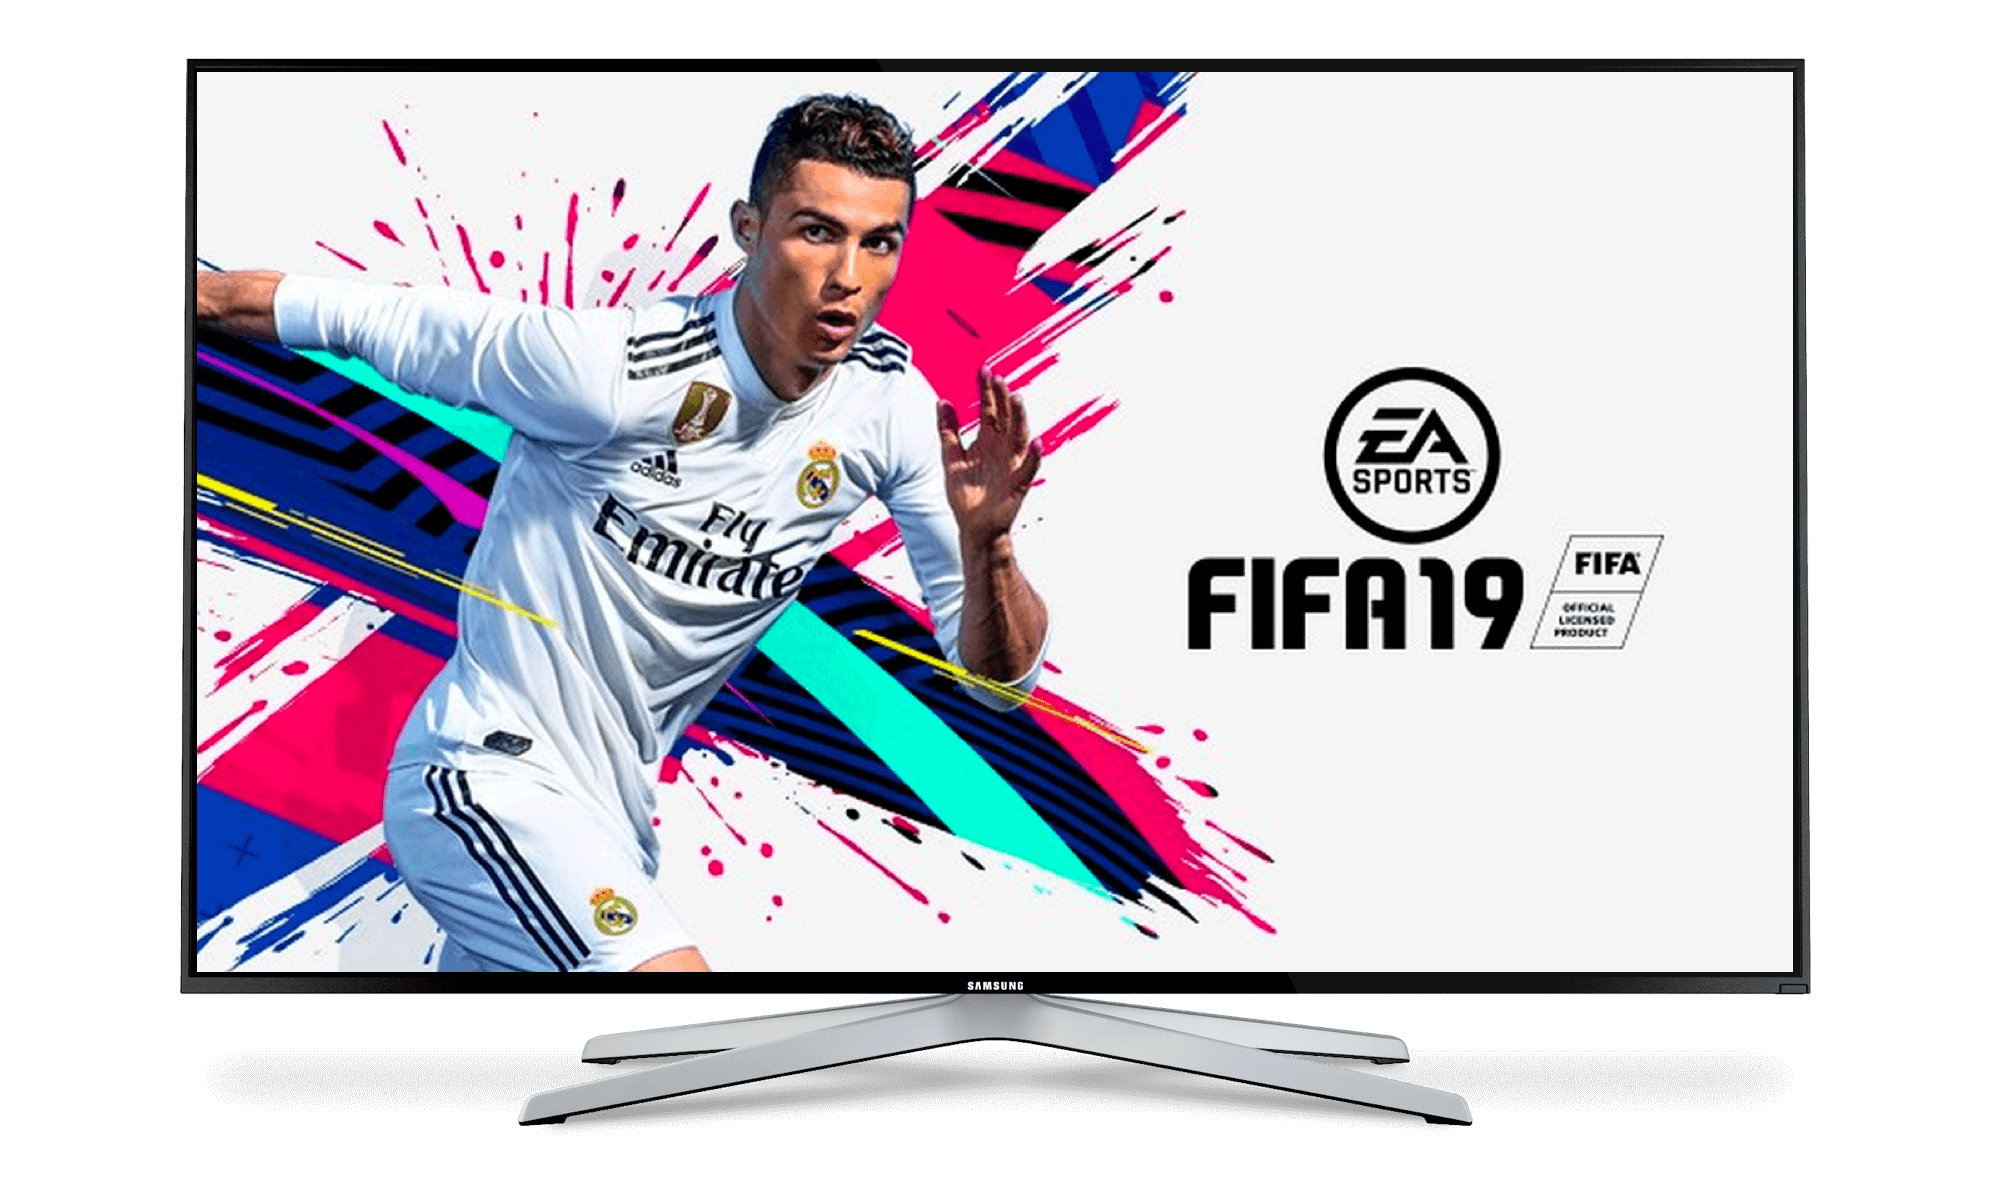 TV Screen showing the FIFA Ultimate Team 19 Console Game loading screen with Ronaldo